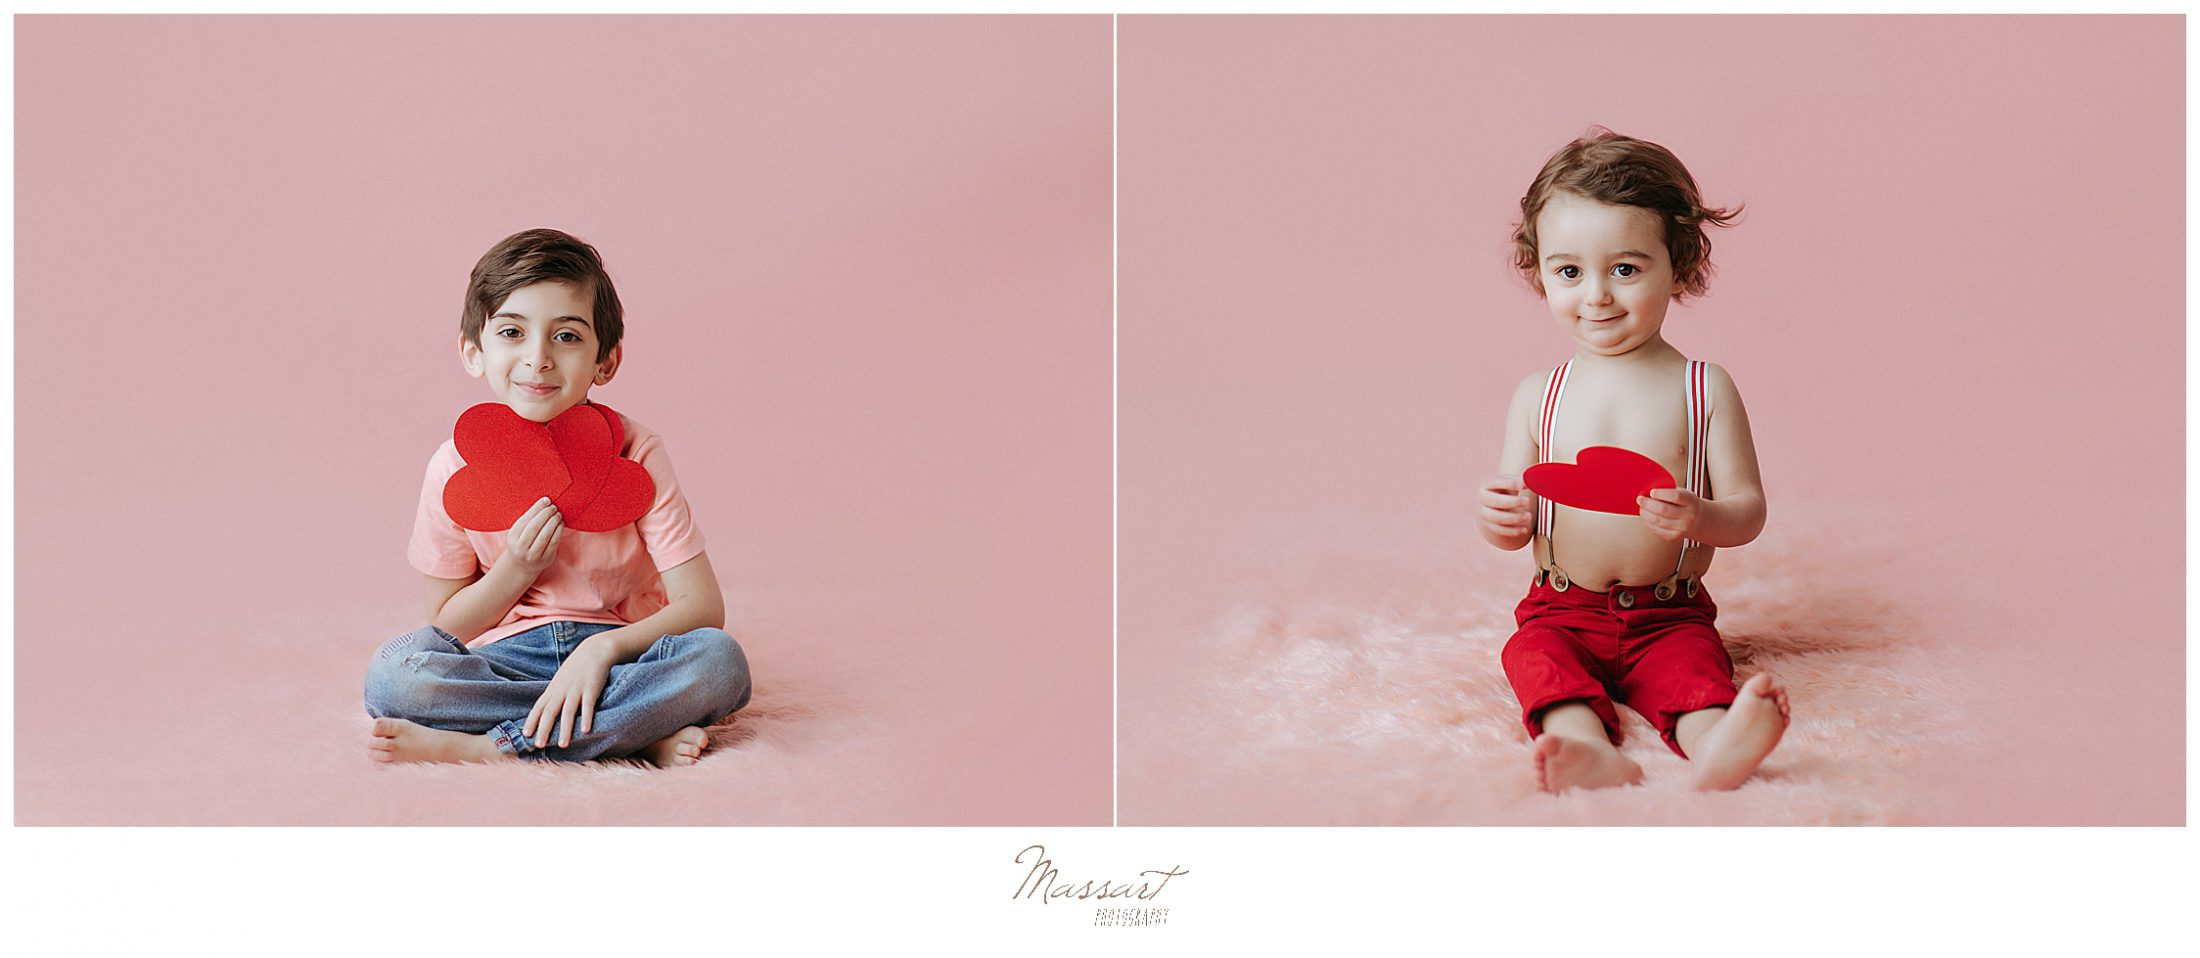 Studio sessions by Massart Photography for V-day